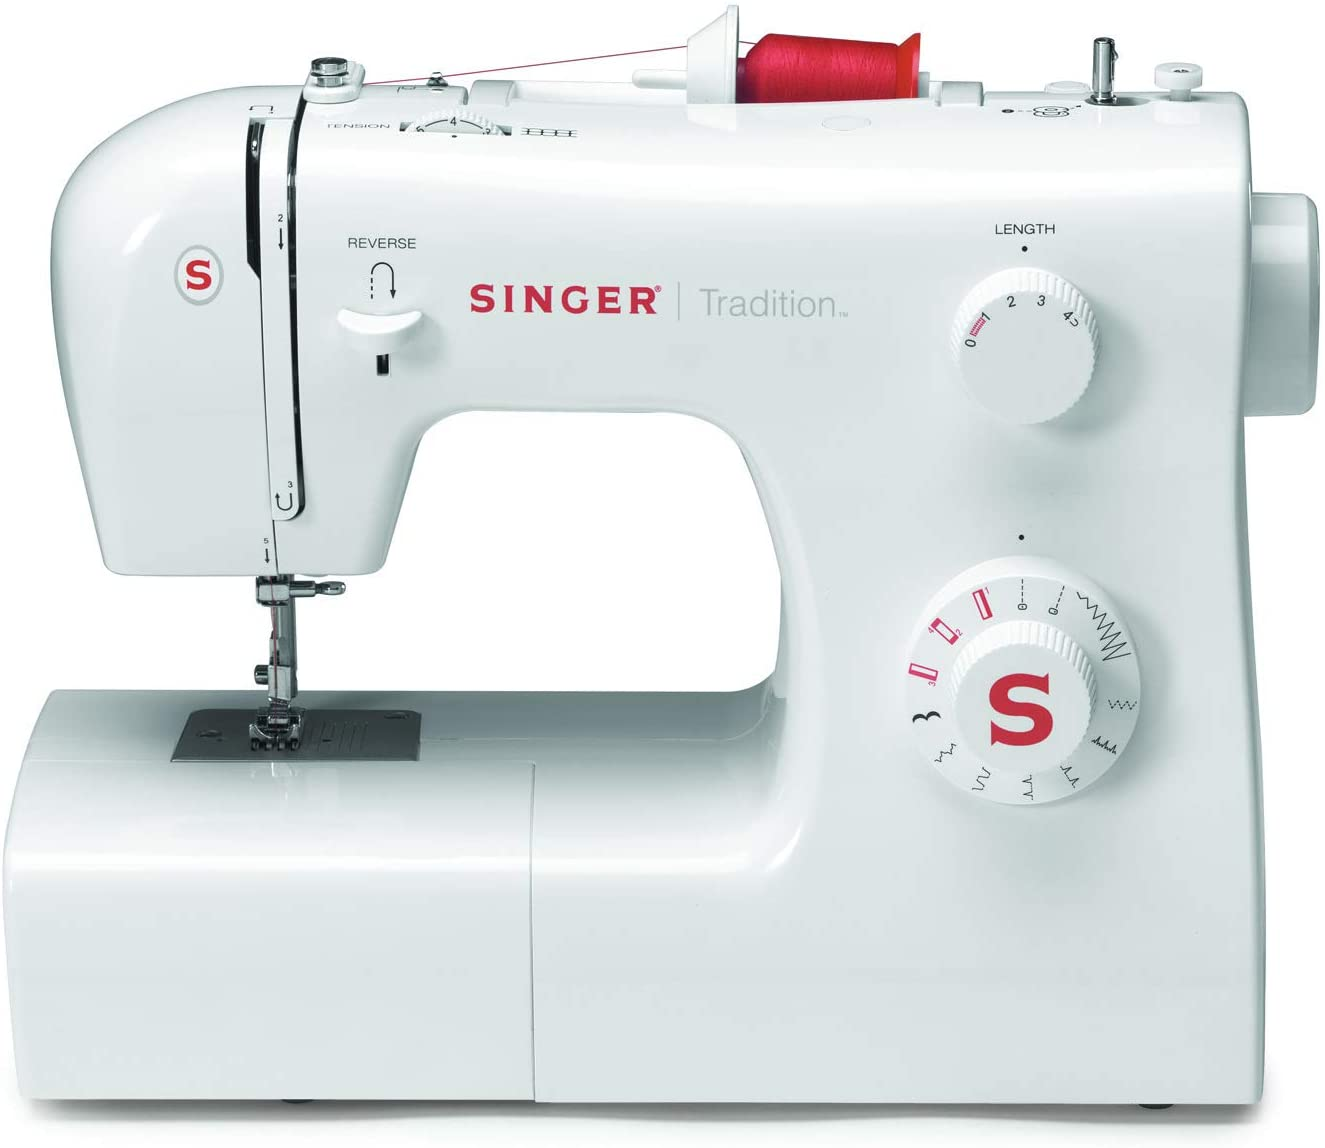 SINGER Tradition 2250 - Máquina de coser (Color blanco, Costura, Paso 4, Variable, Giratorio, Variable)